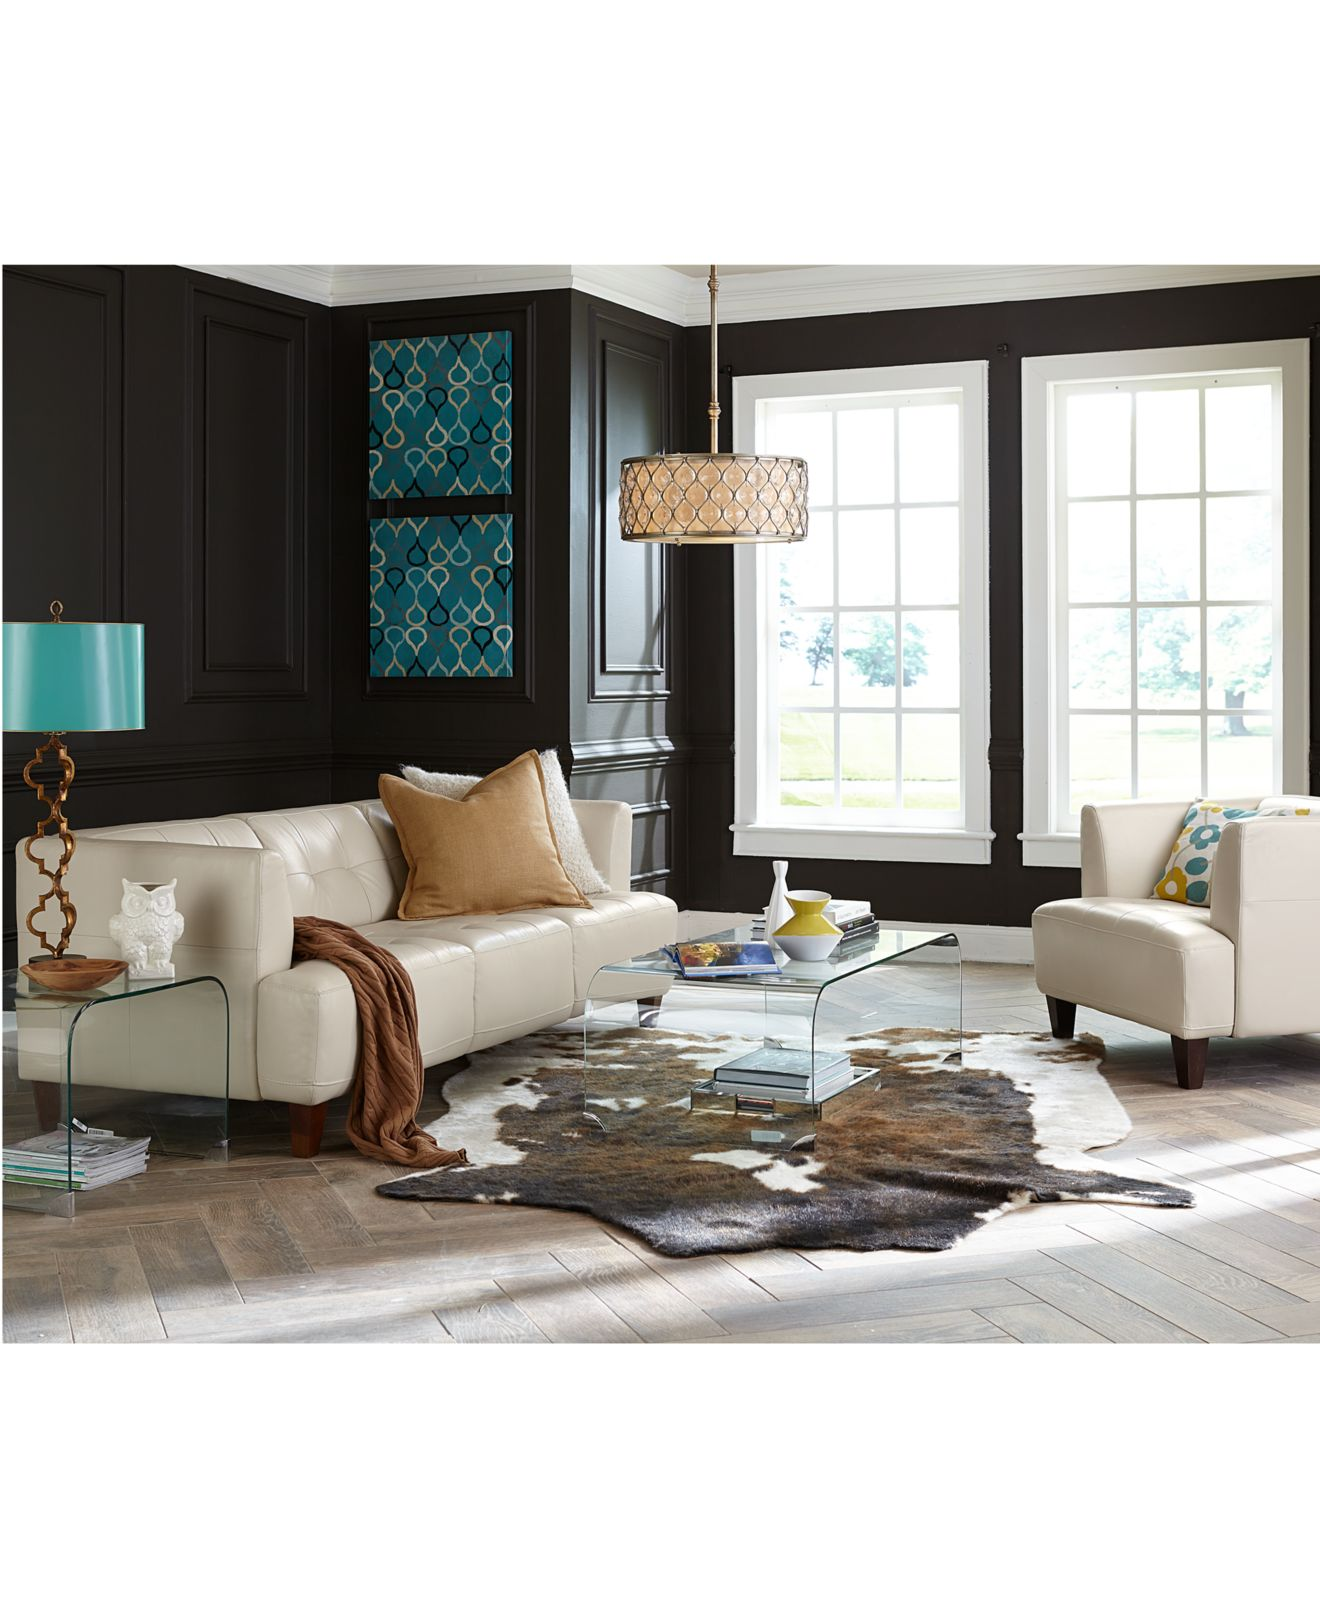 Living Room Collections Living Room Furniture Sets Macy s